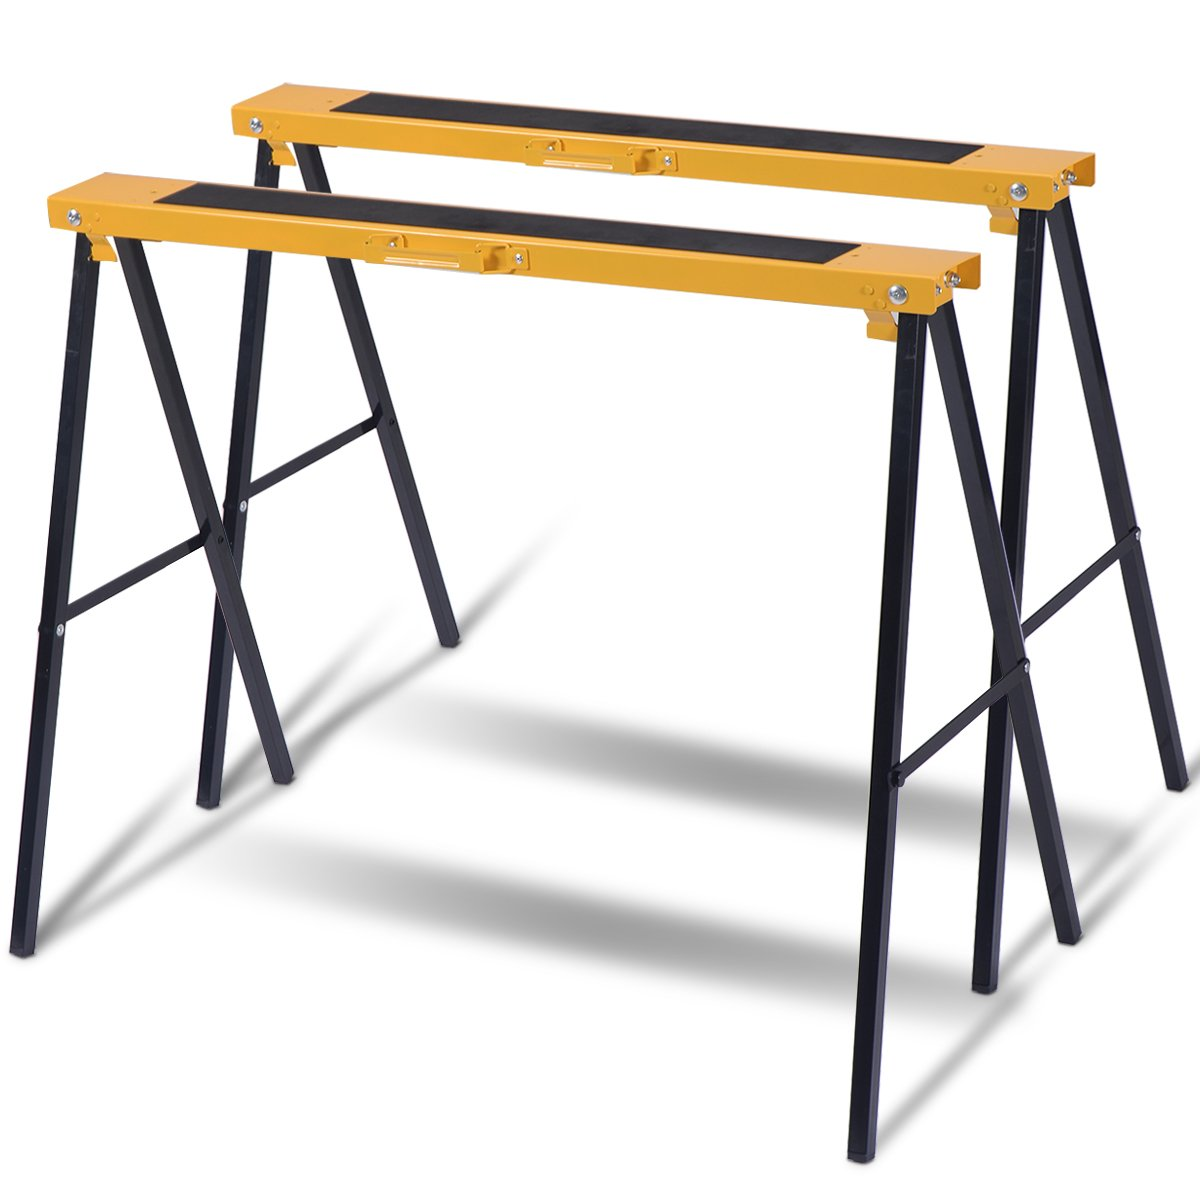 Superbuy 2-Pack Sawhorse Pair Heavy Duty Folding Legs Portable Saw Horses Twin Pack, 275 lb Weight Capacity Each (Classic) by Goplus